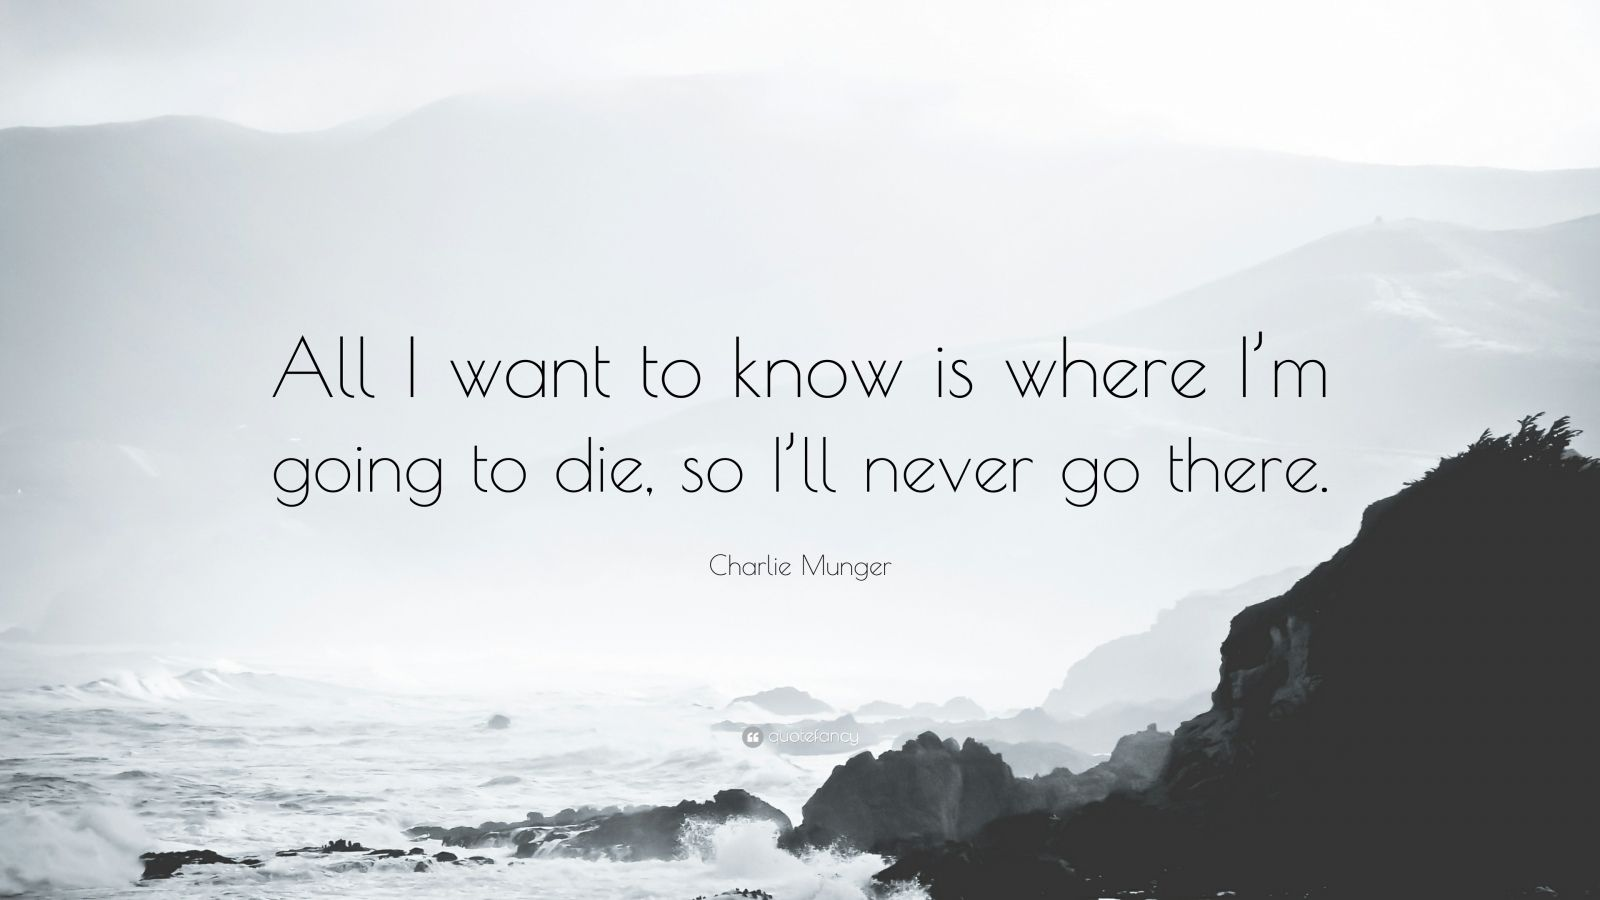 """Charlie Munger Quote: """"All I want to know is where I'm going to die, so I'll never go there."""""""